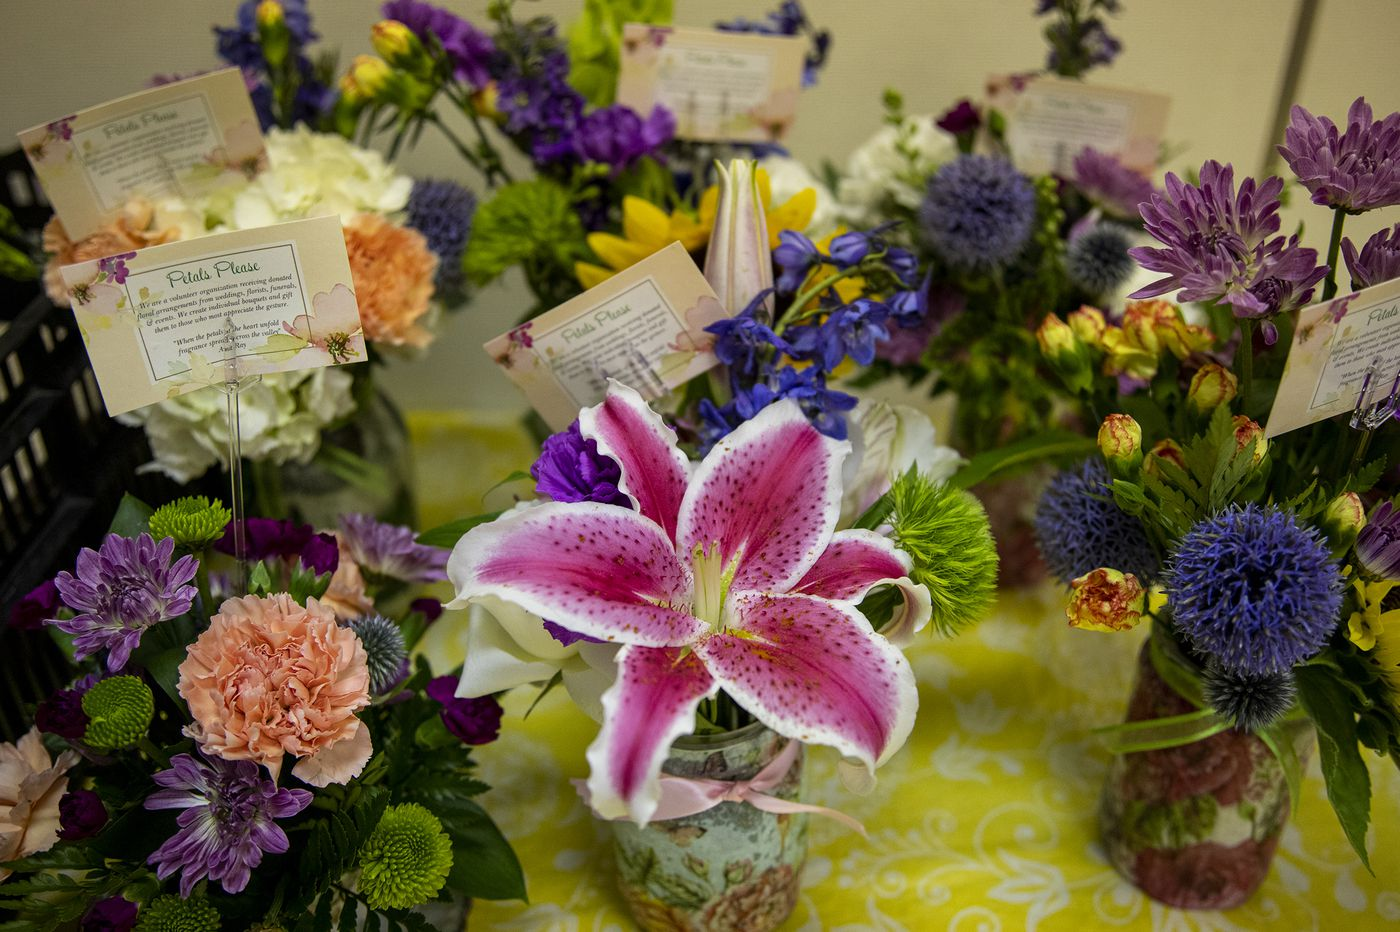 Downingtown's Petals Please recycles wedding and funeral flowers into free bouquets for lonely seniors